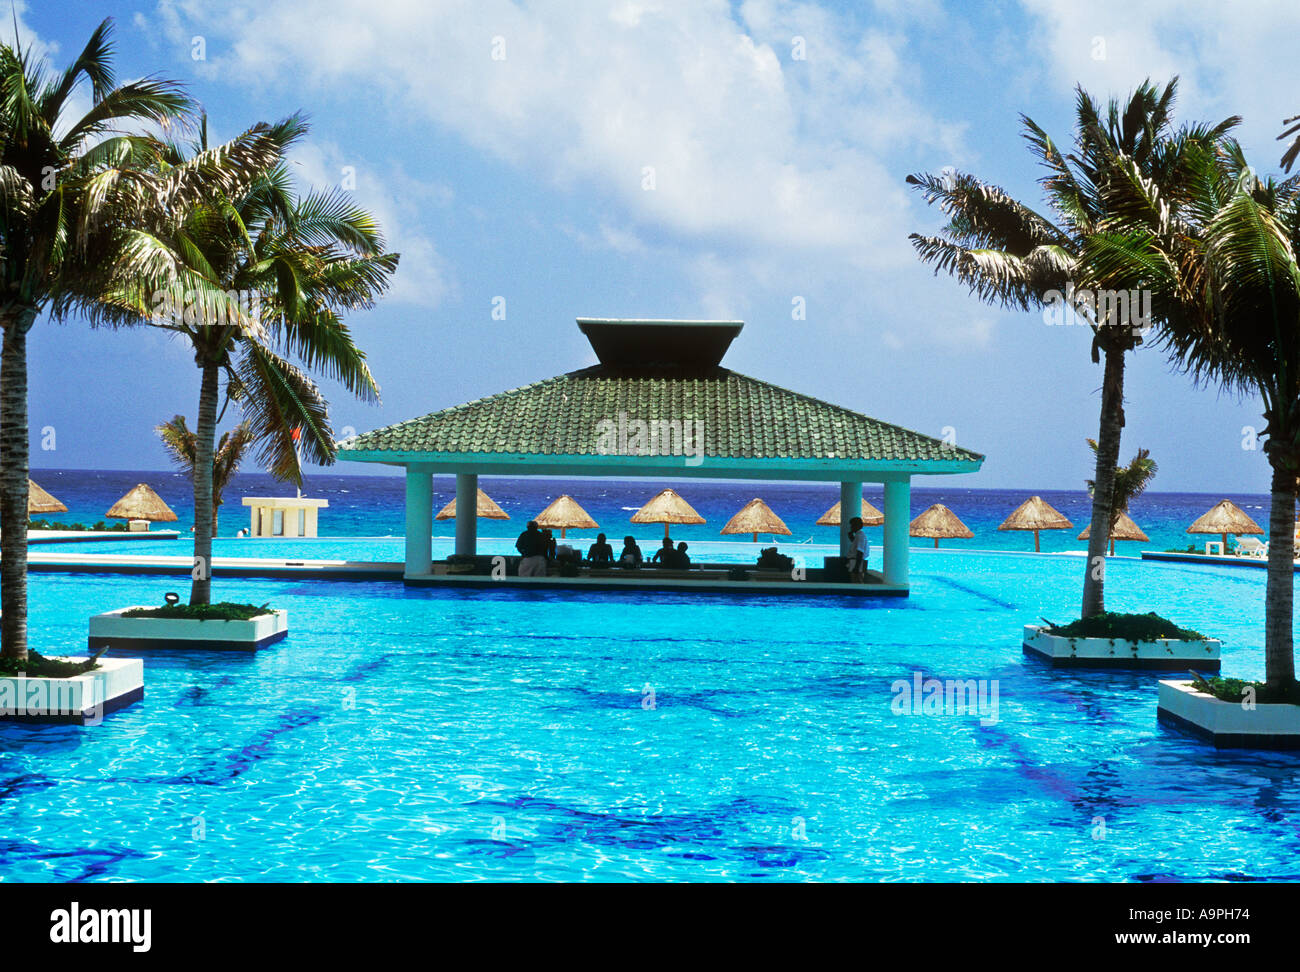 Mexico Cancun Pool And Swim Up Bar With Palapas On Beach Stock Photo 4053363 Alamy